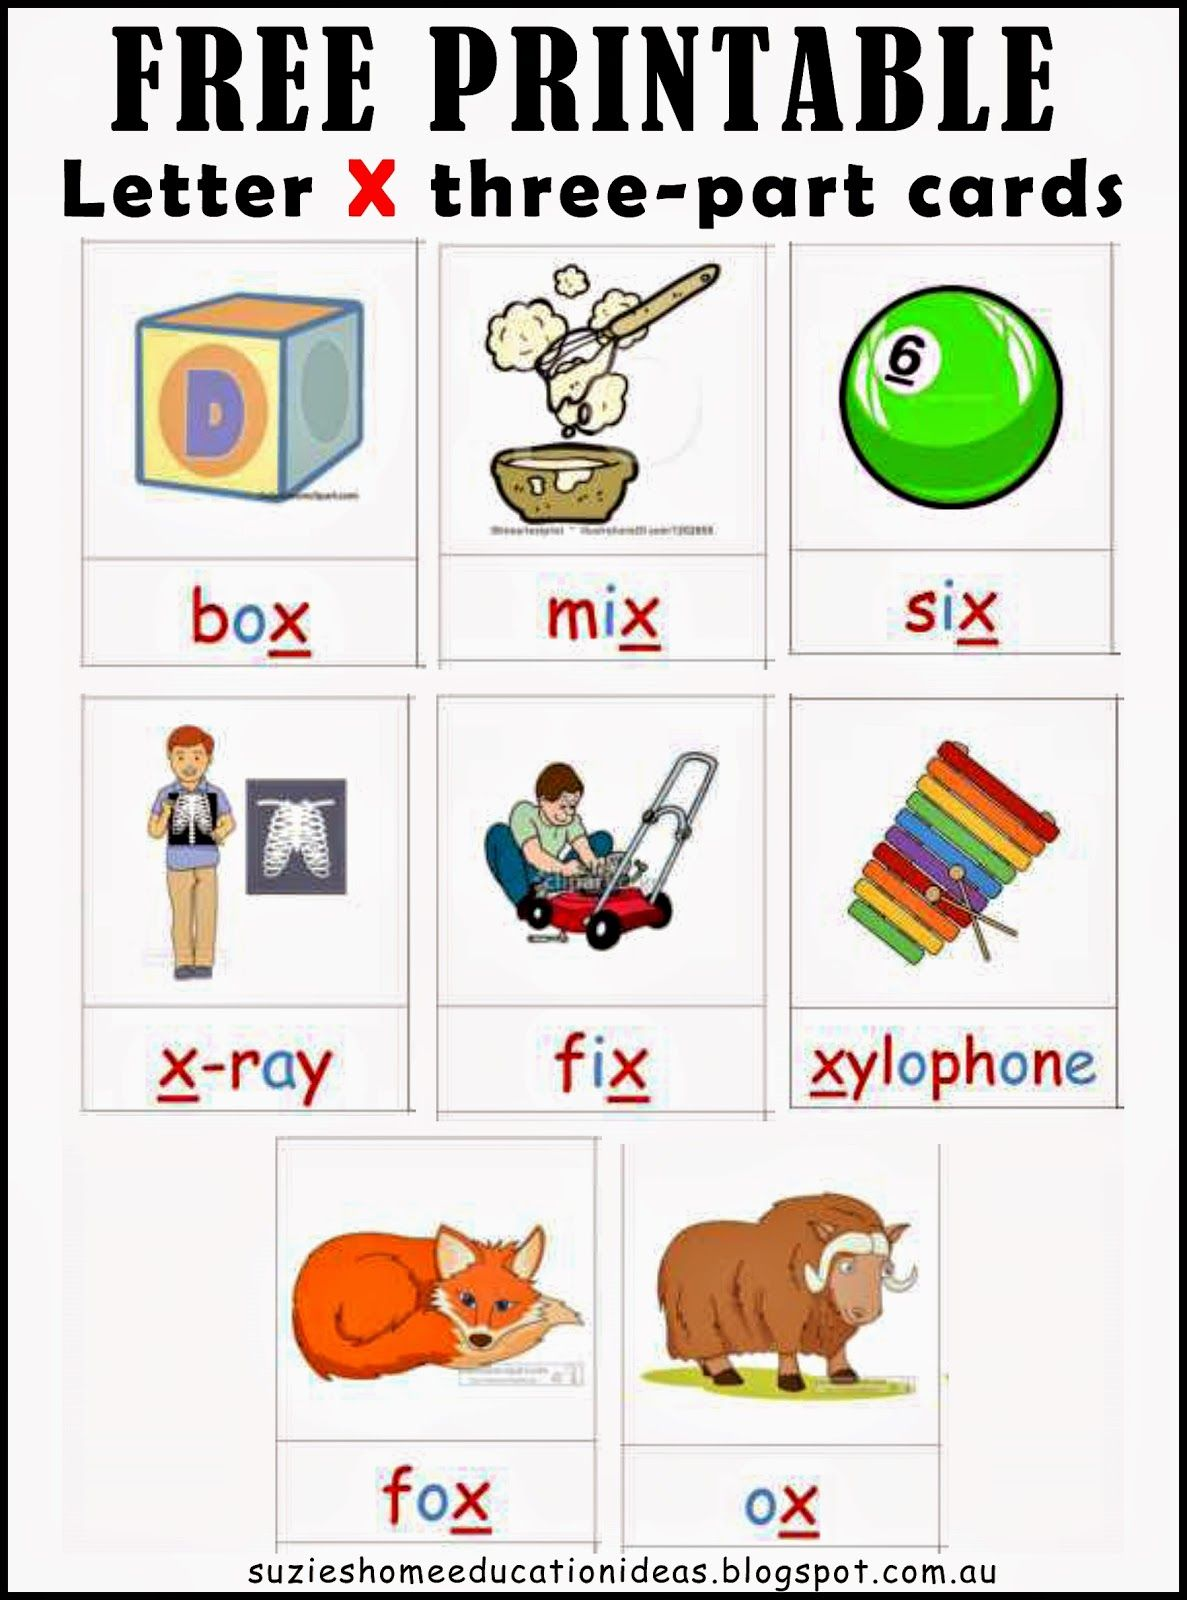 words starting with the letter x letter x printable cards and activity ideas classroom 25715 | 340afb86d57cc822bb4d040b5e8ff8be